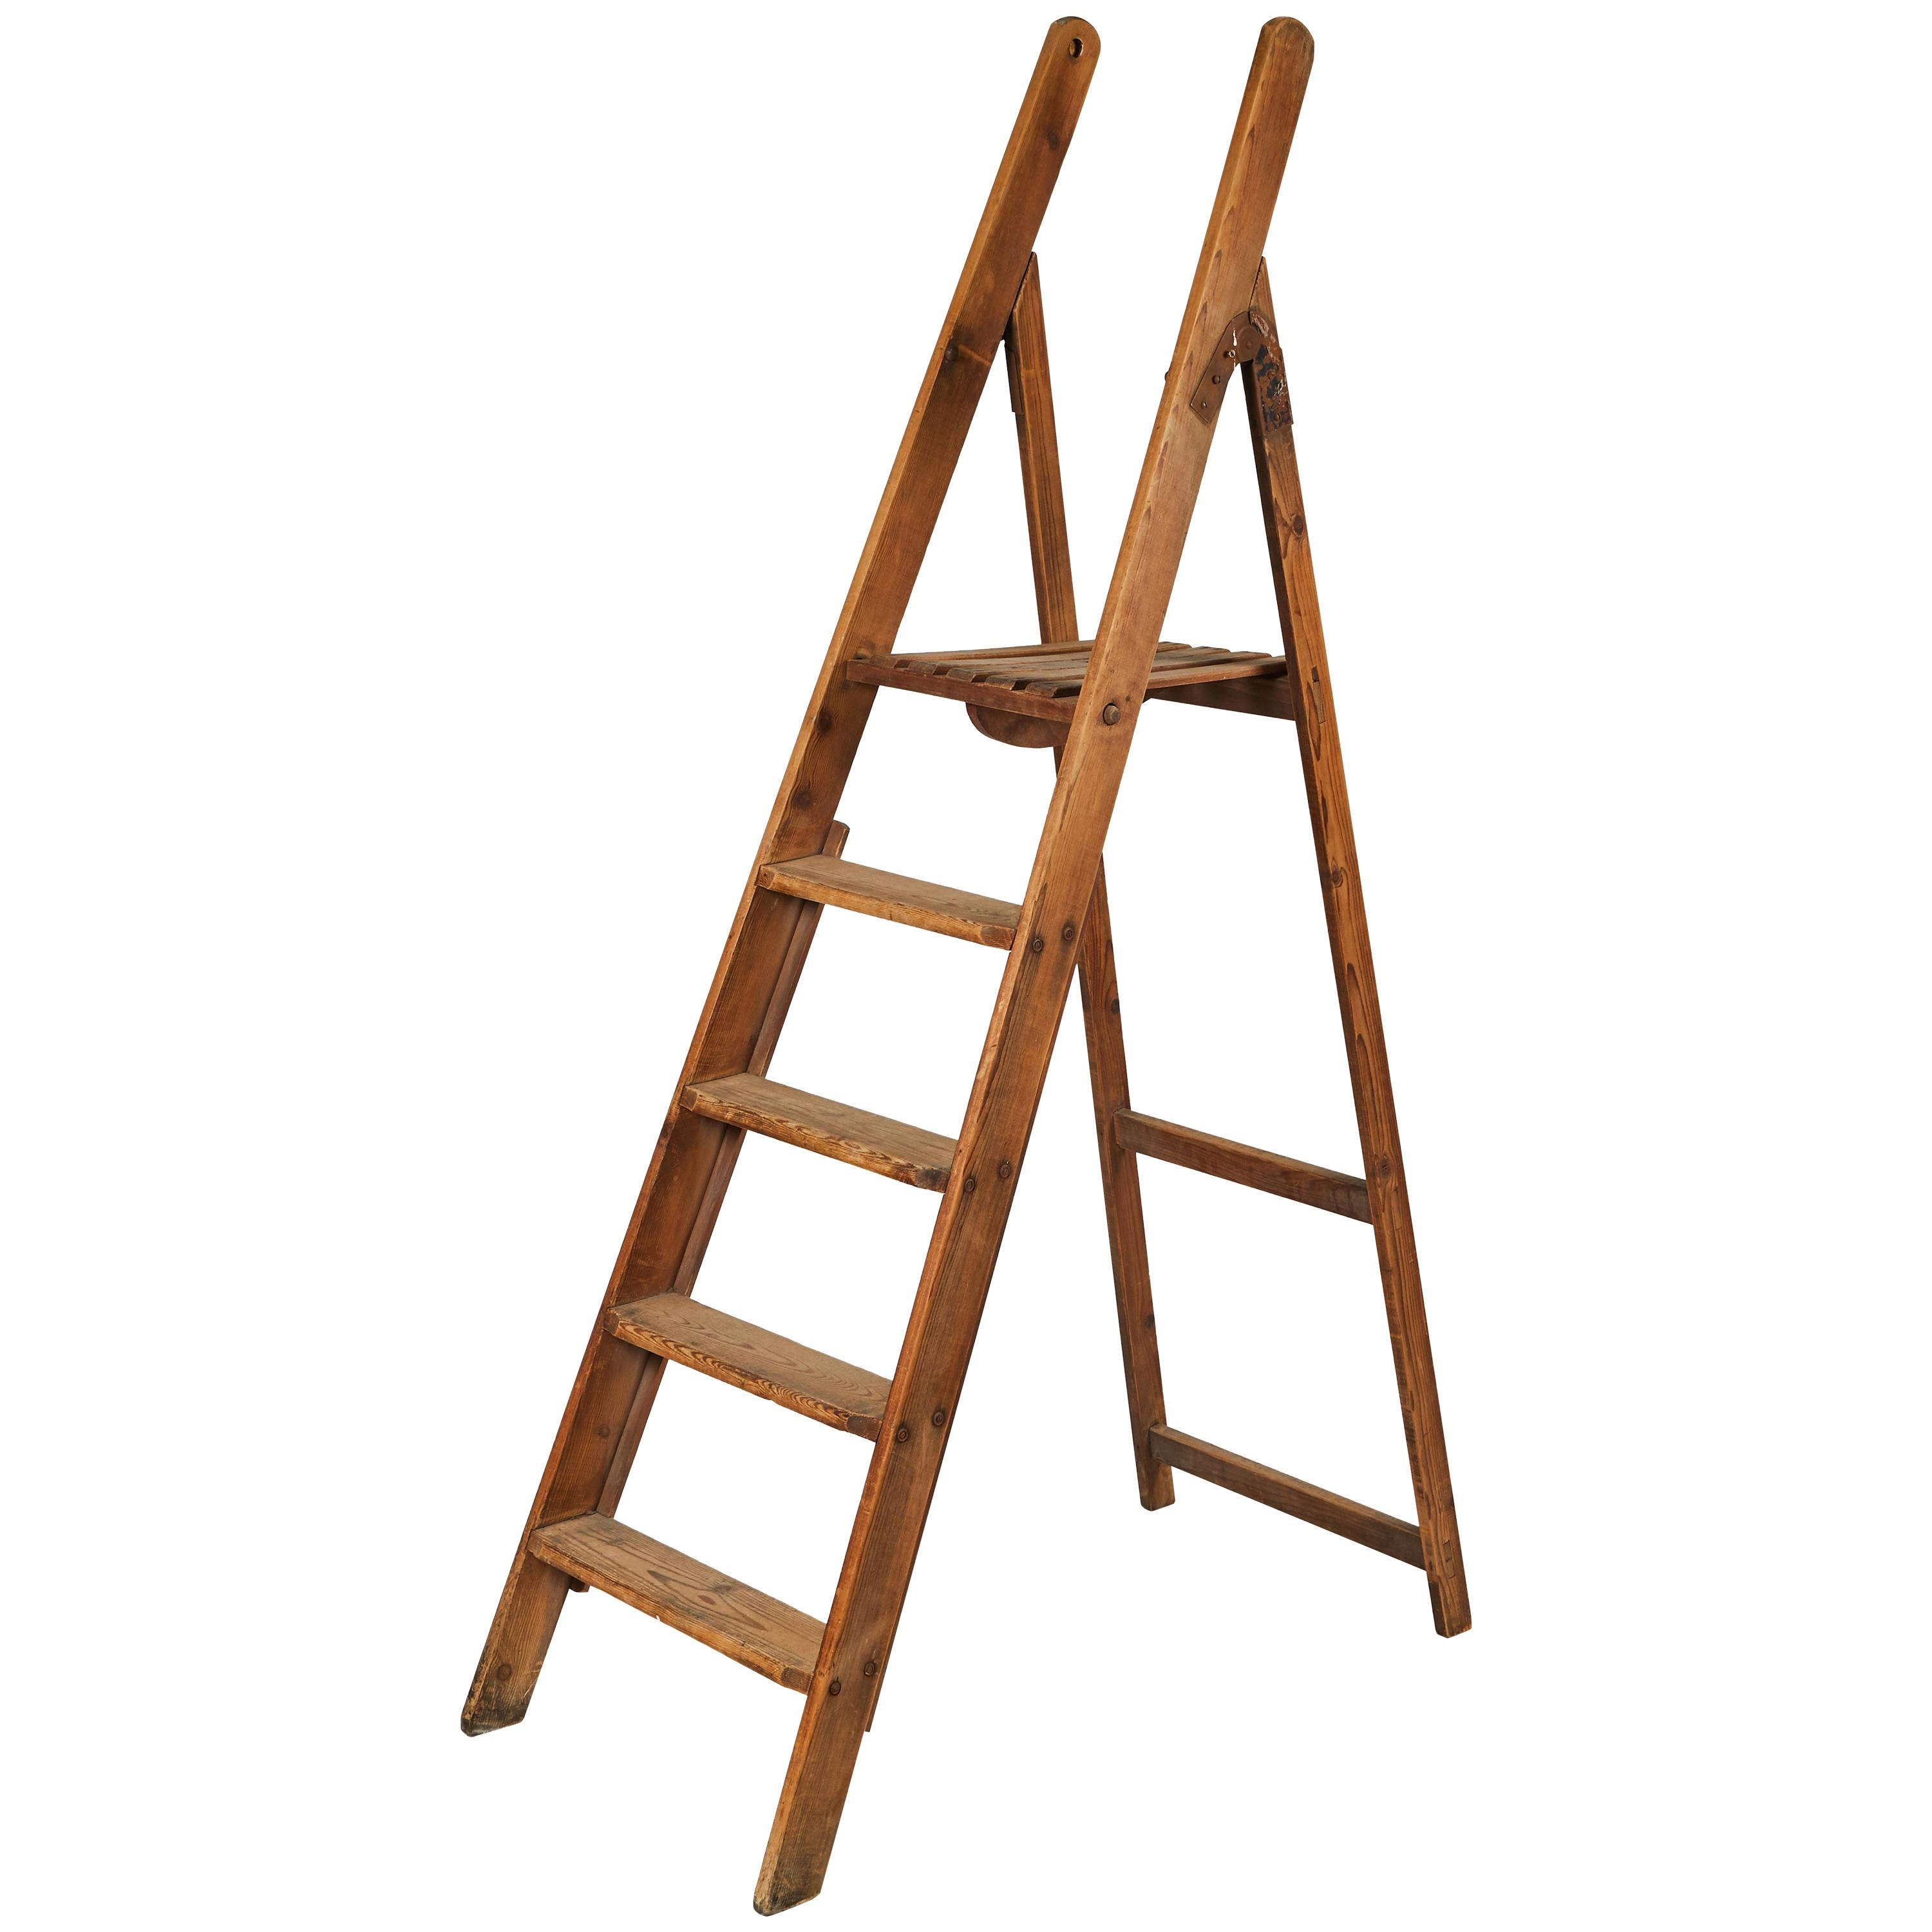 Folding Wooden Library Ladder from Late 19th Century France